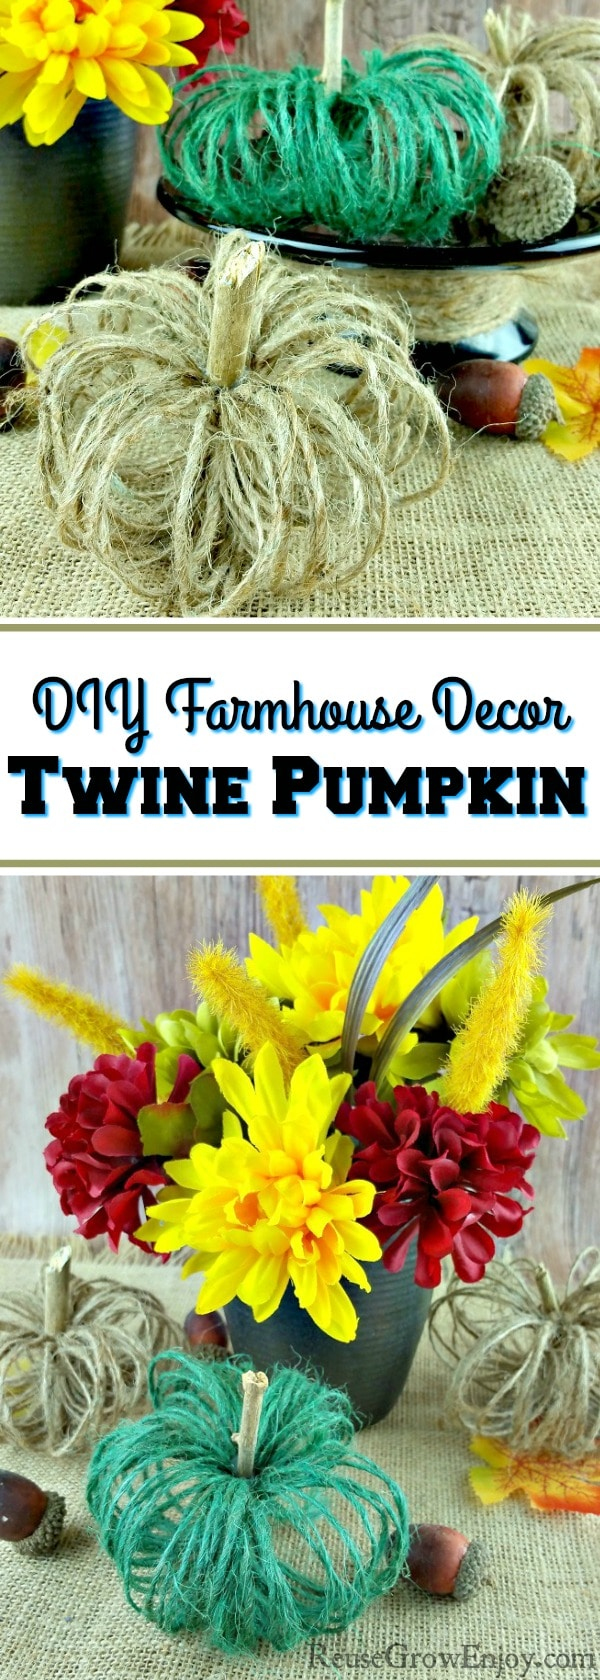 Do you like that rustic country look? Check out this DIY Farmhouse Decor Fall Twine Pumpkin Craft! Great way to get that fall country feel in the home.